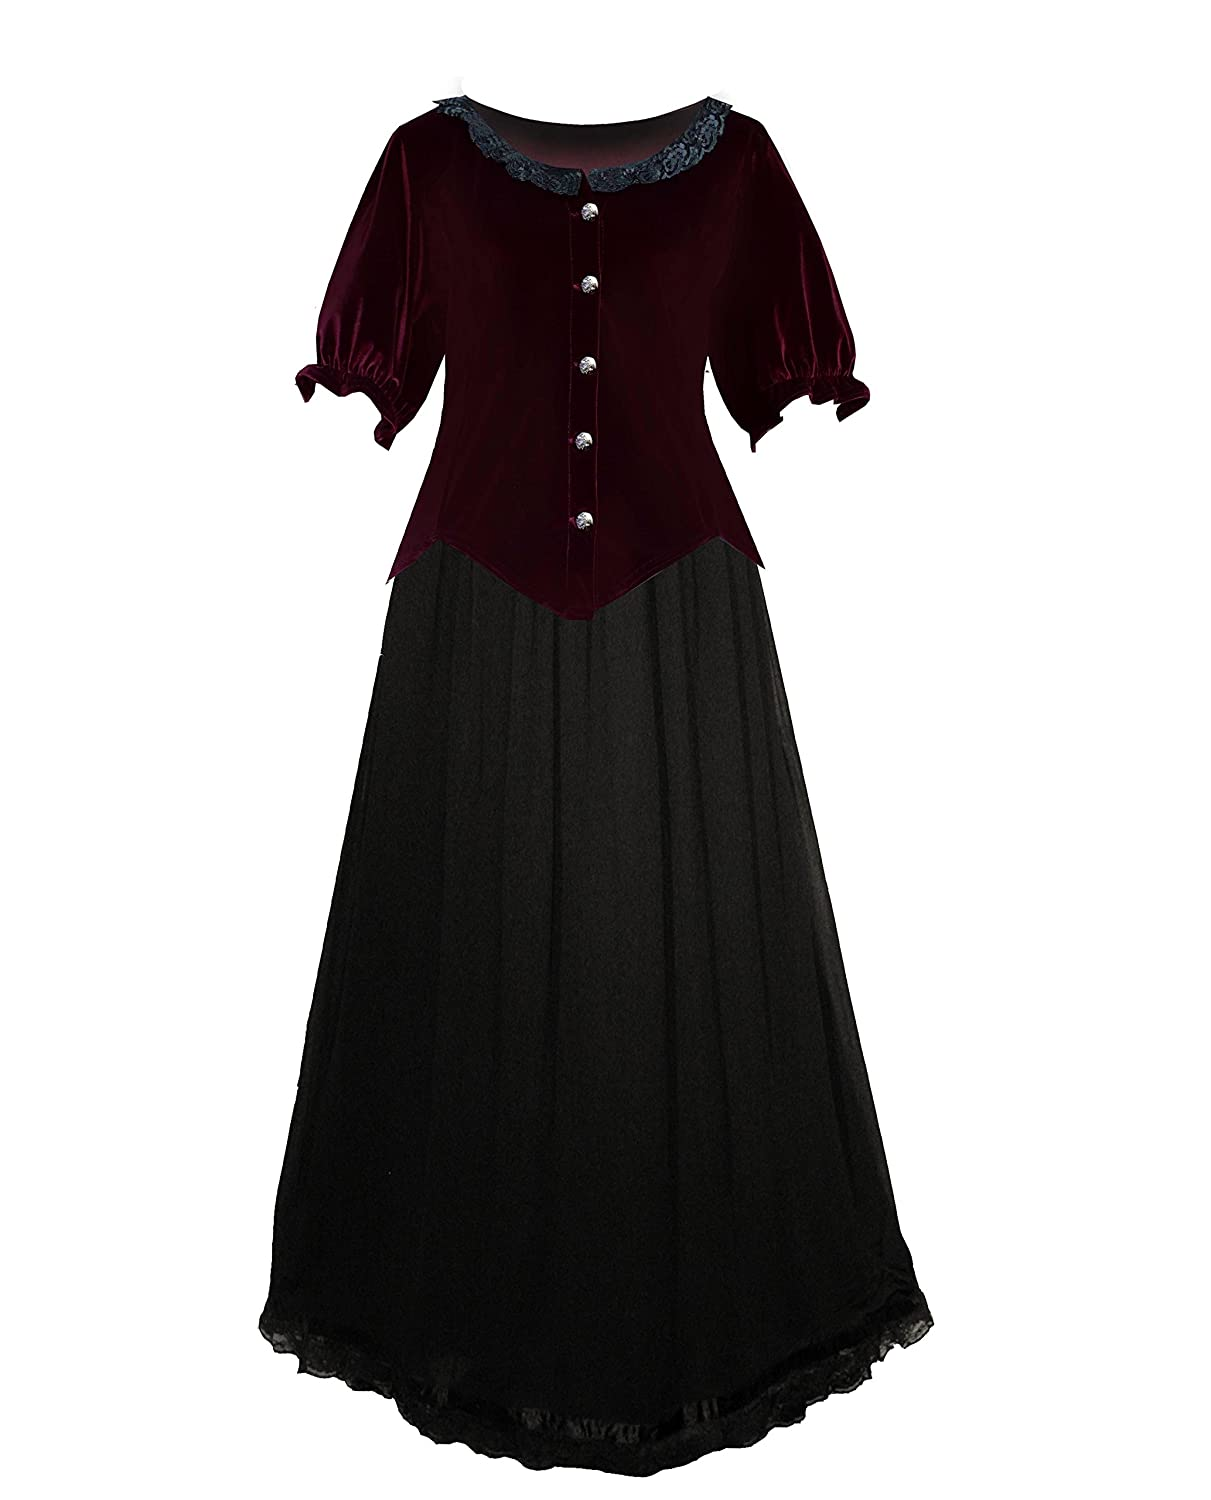 Victorian Costume Dresses & Skirts for Sale Victorian Steampunk Gothic Renaissance Velvet Top & Long Skirt $89.00 AT vintagedancer.com